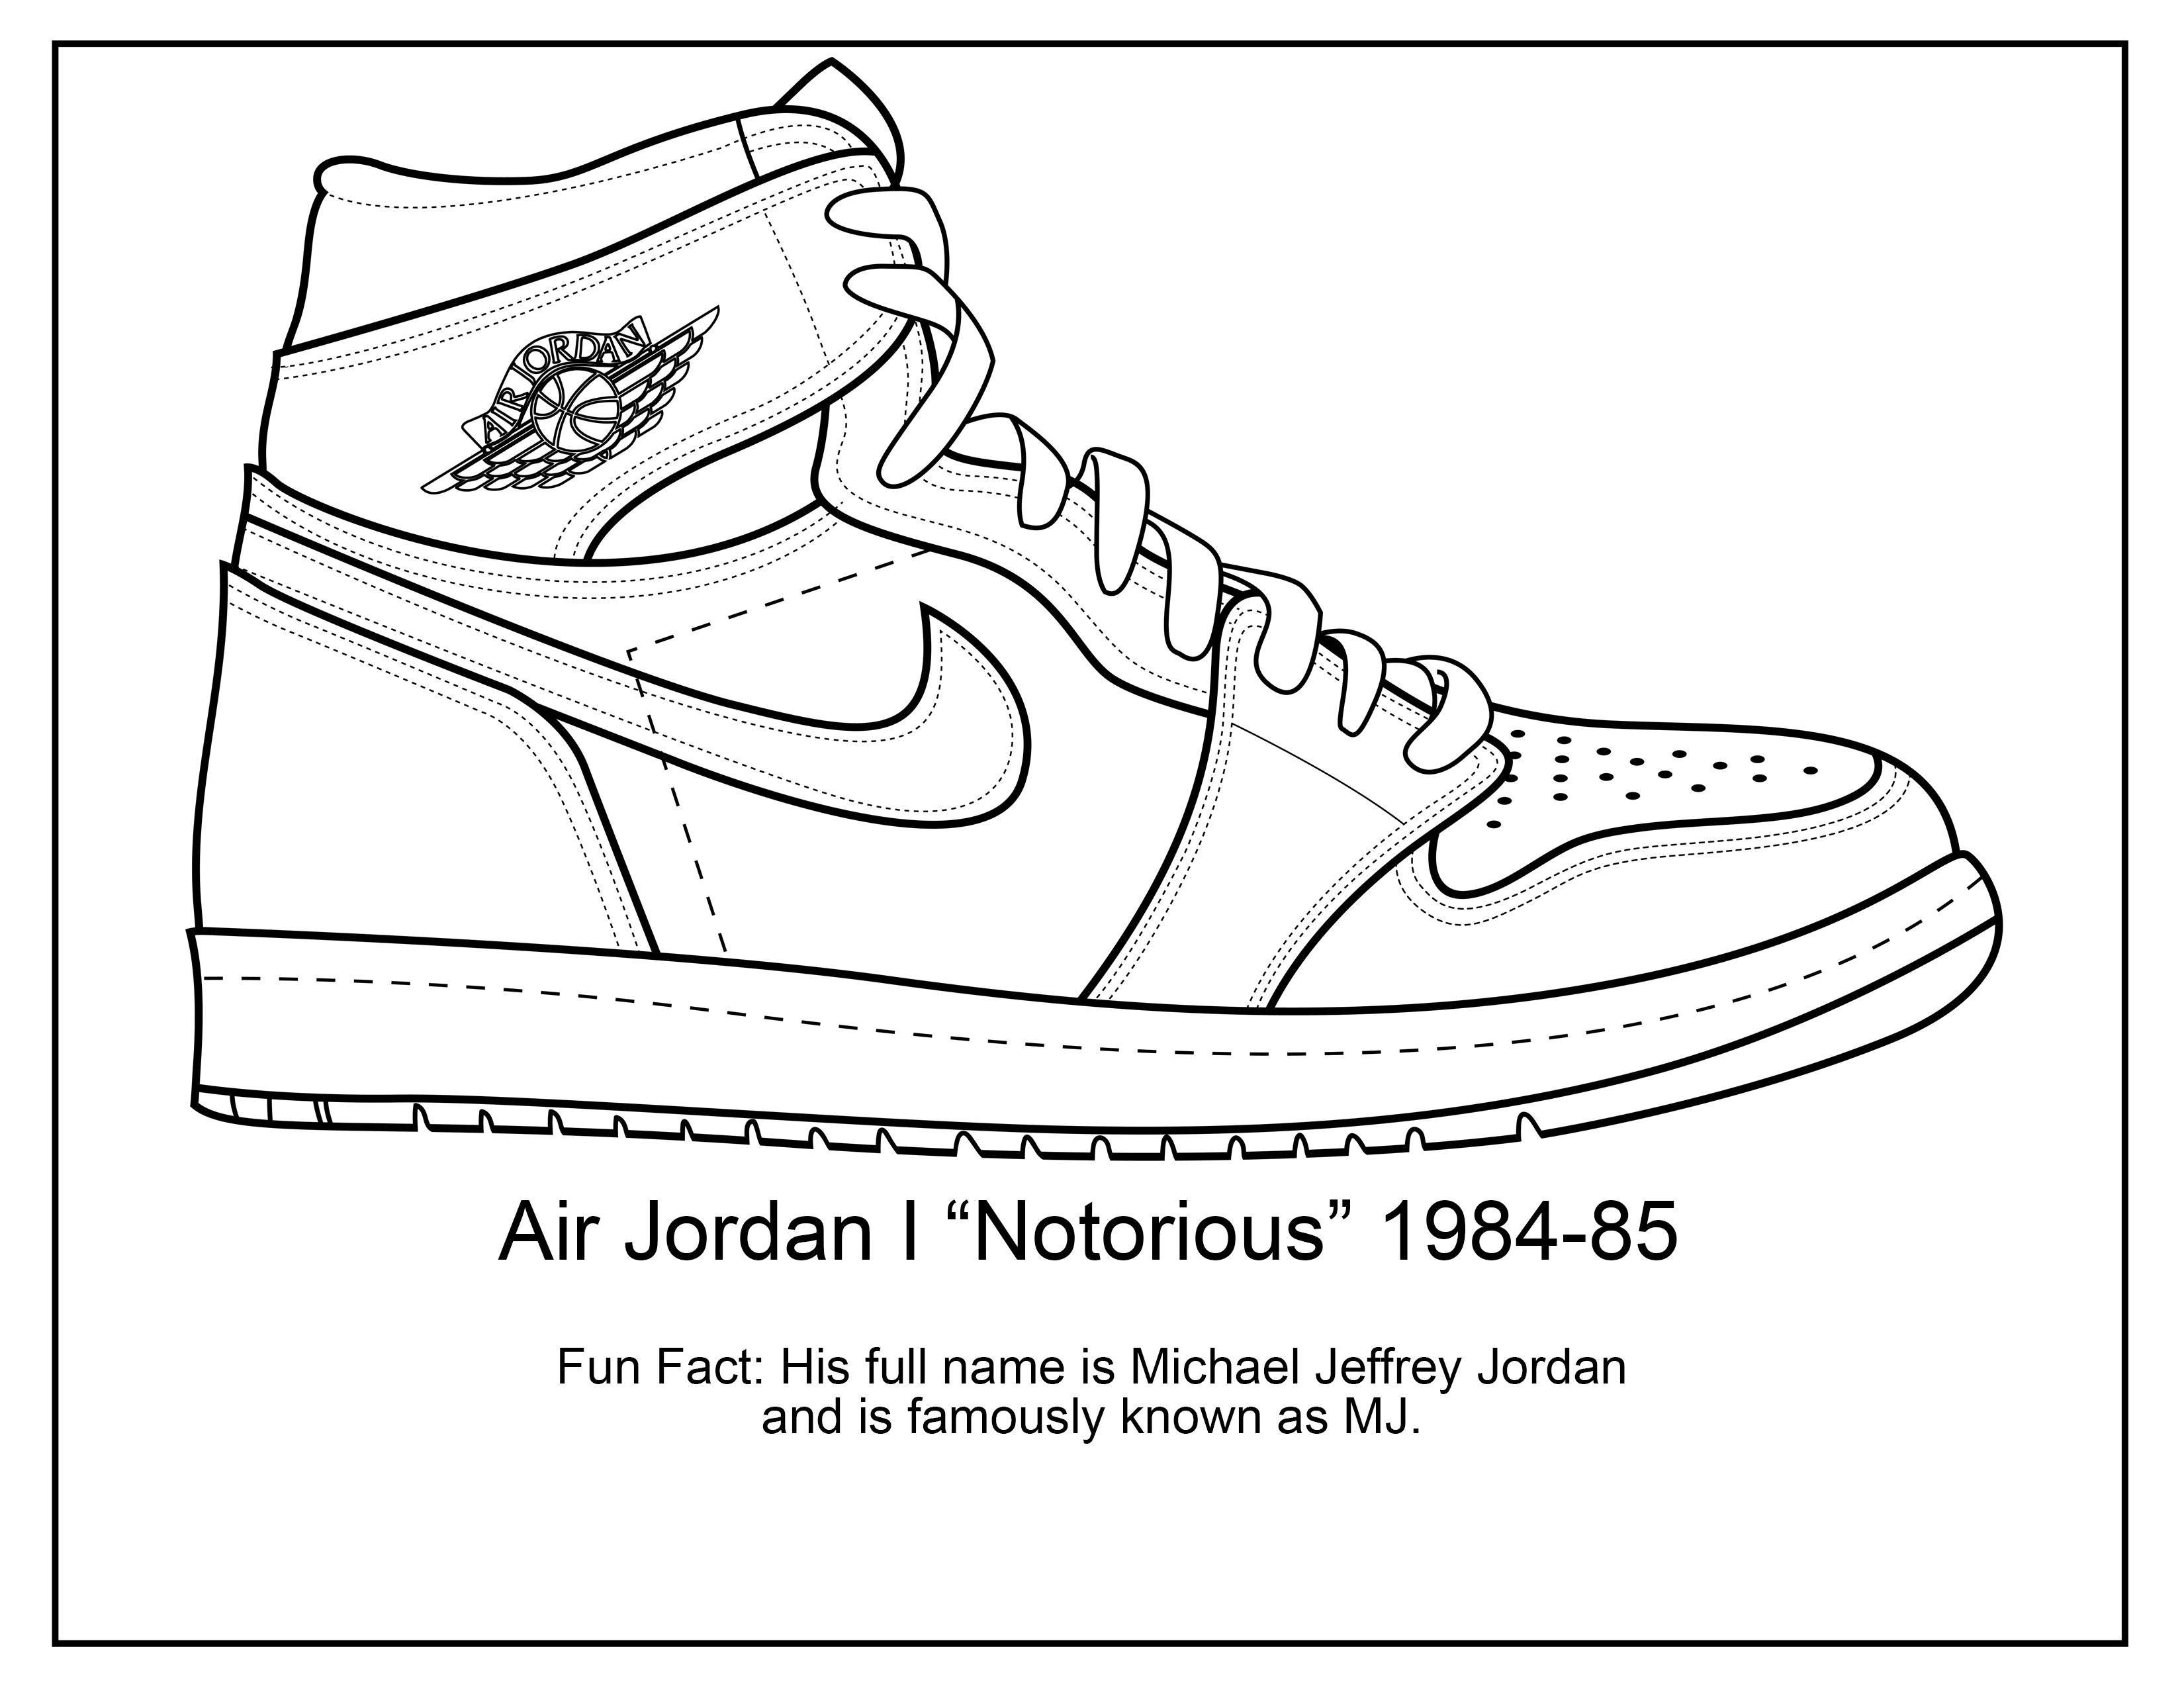 kd coloring pages kd shoes coloring pages at getcoloringscom free pages coloring kd 1 1